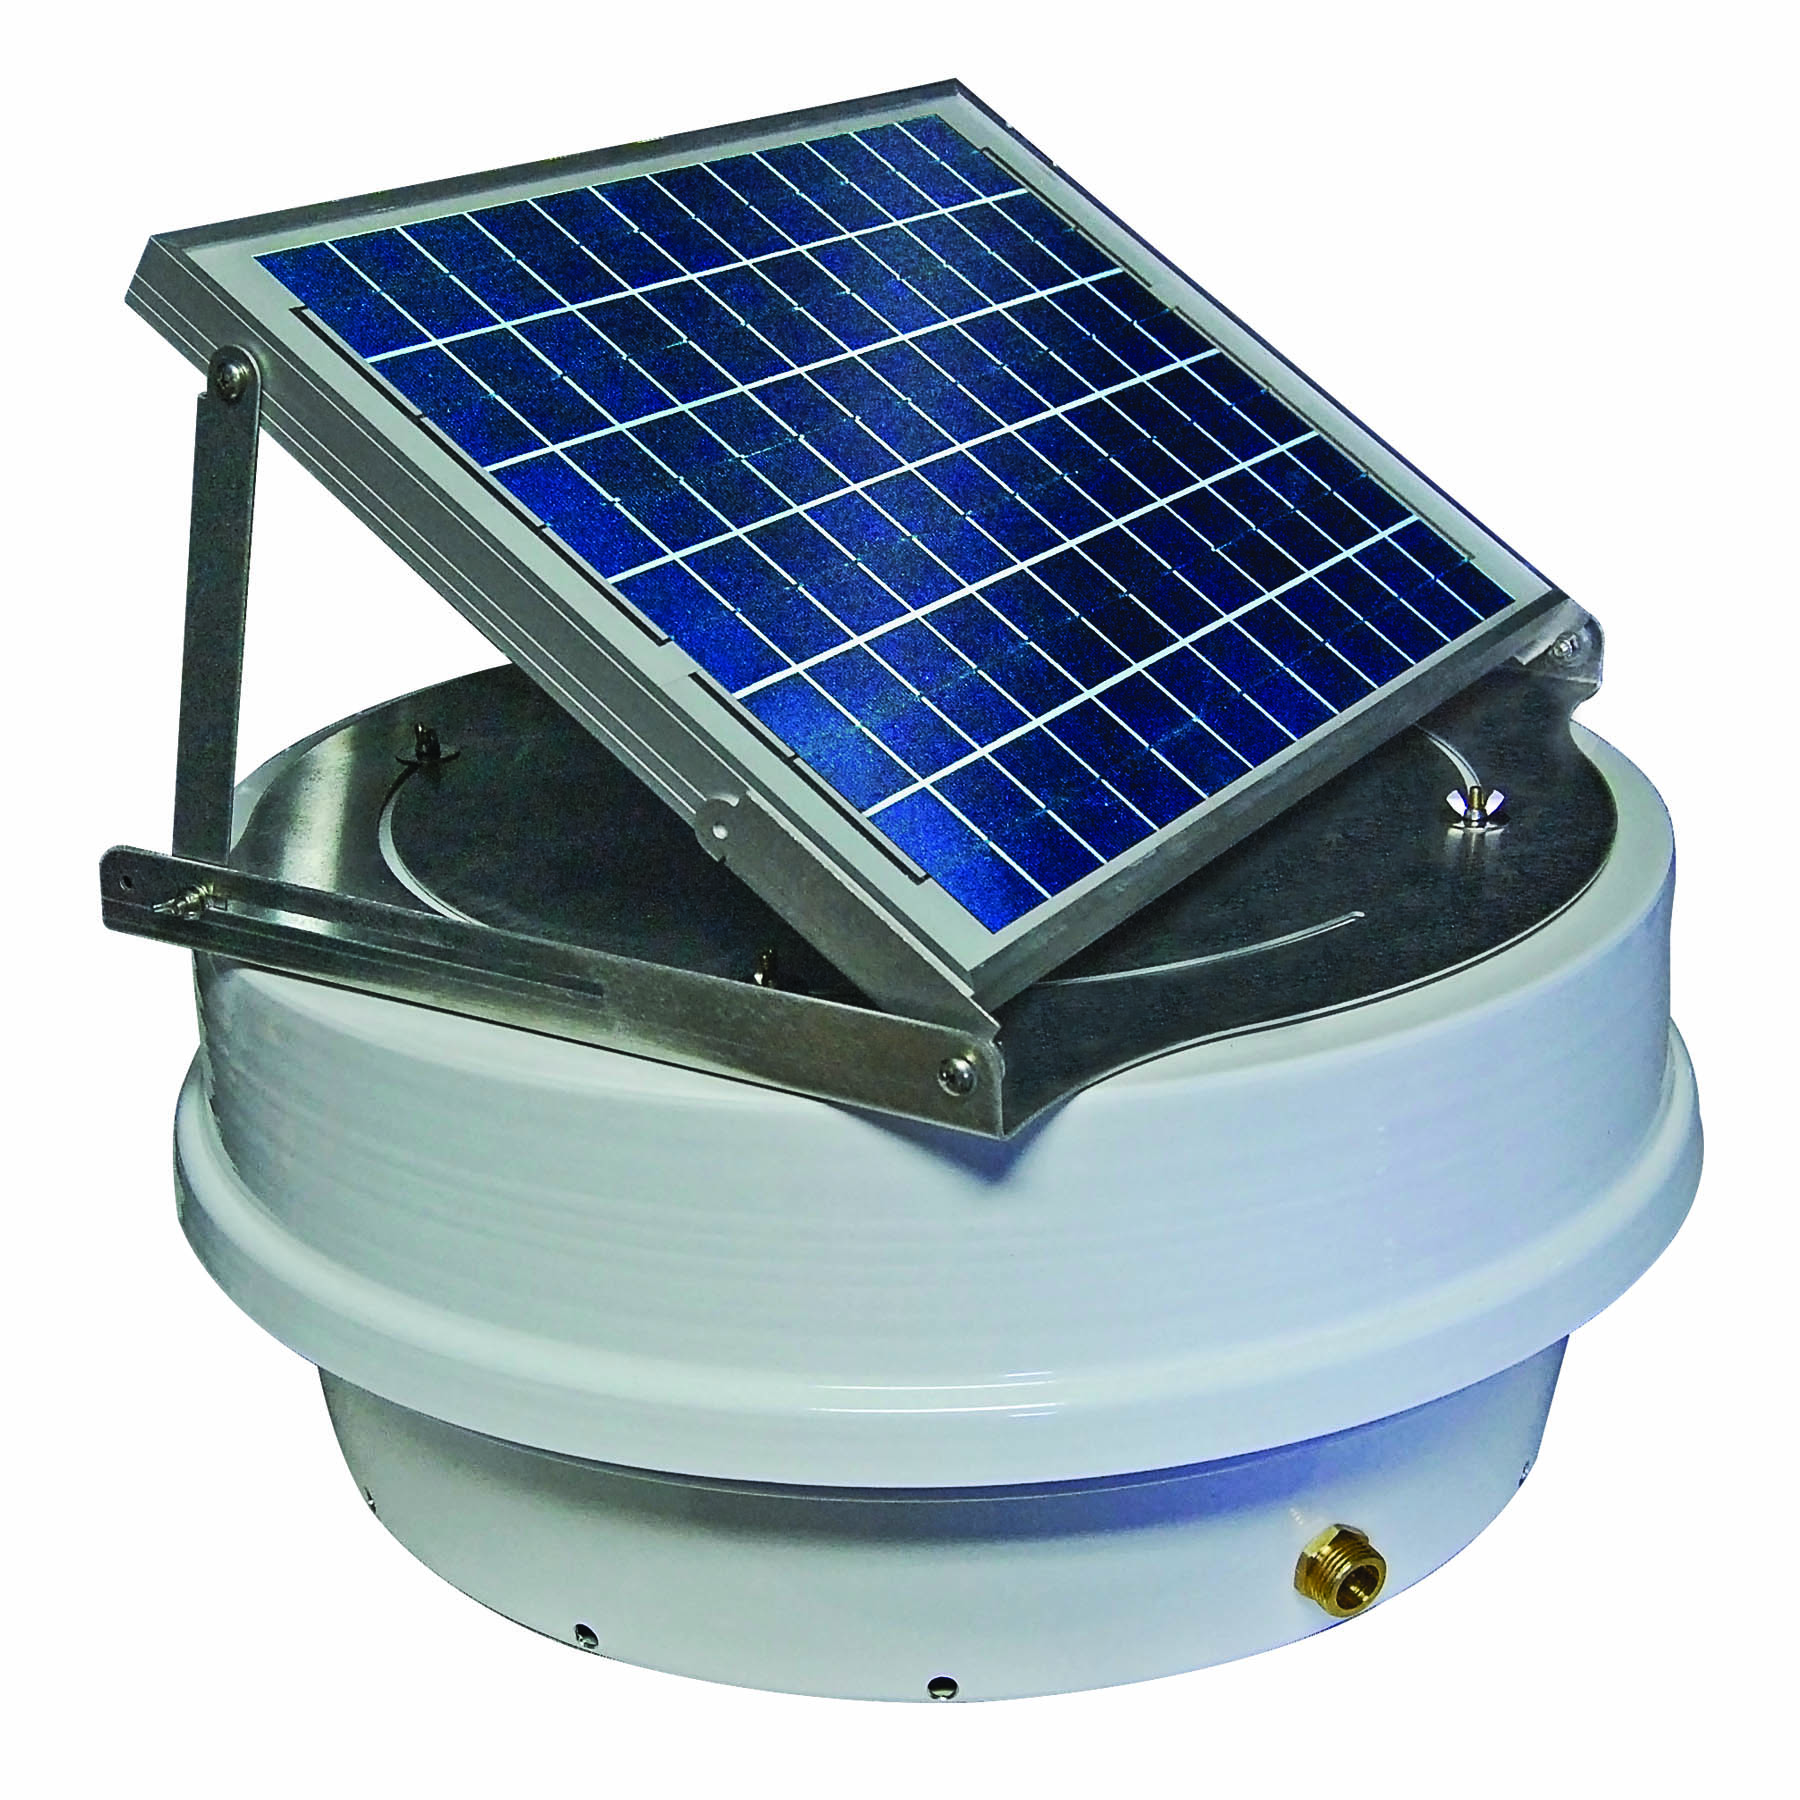 Solar Lights Roof: American Made Solar Powered Attic Fans & Solar Lighting